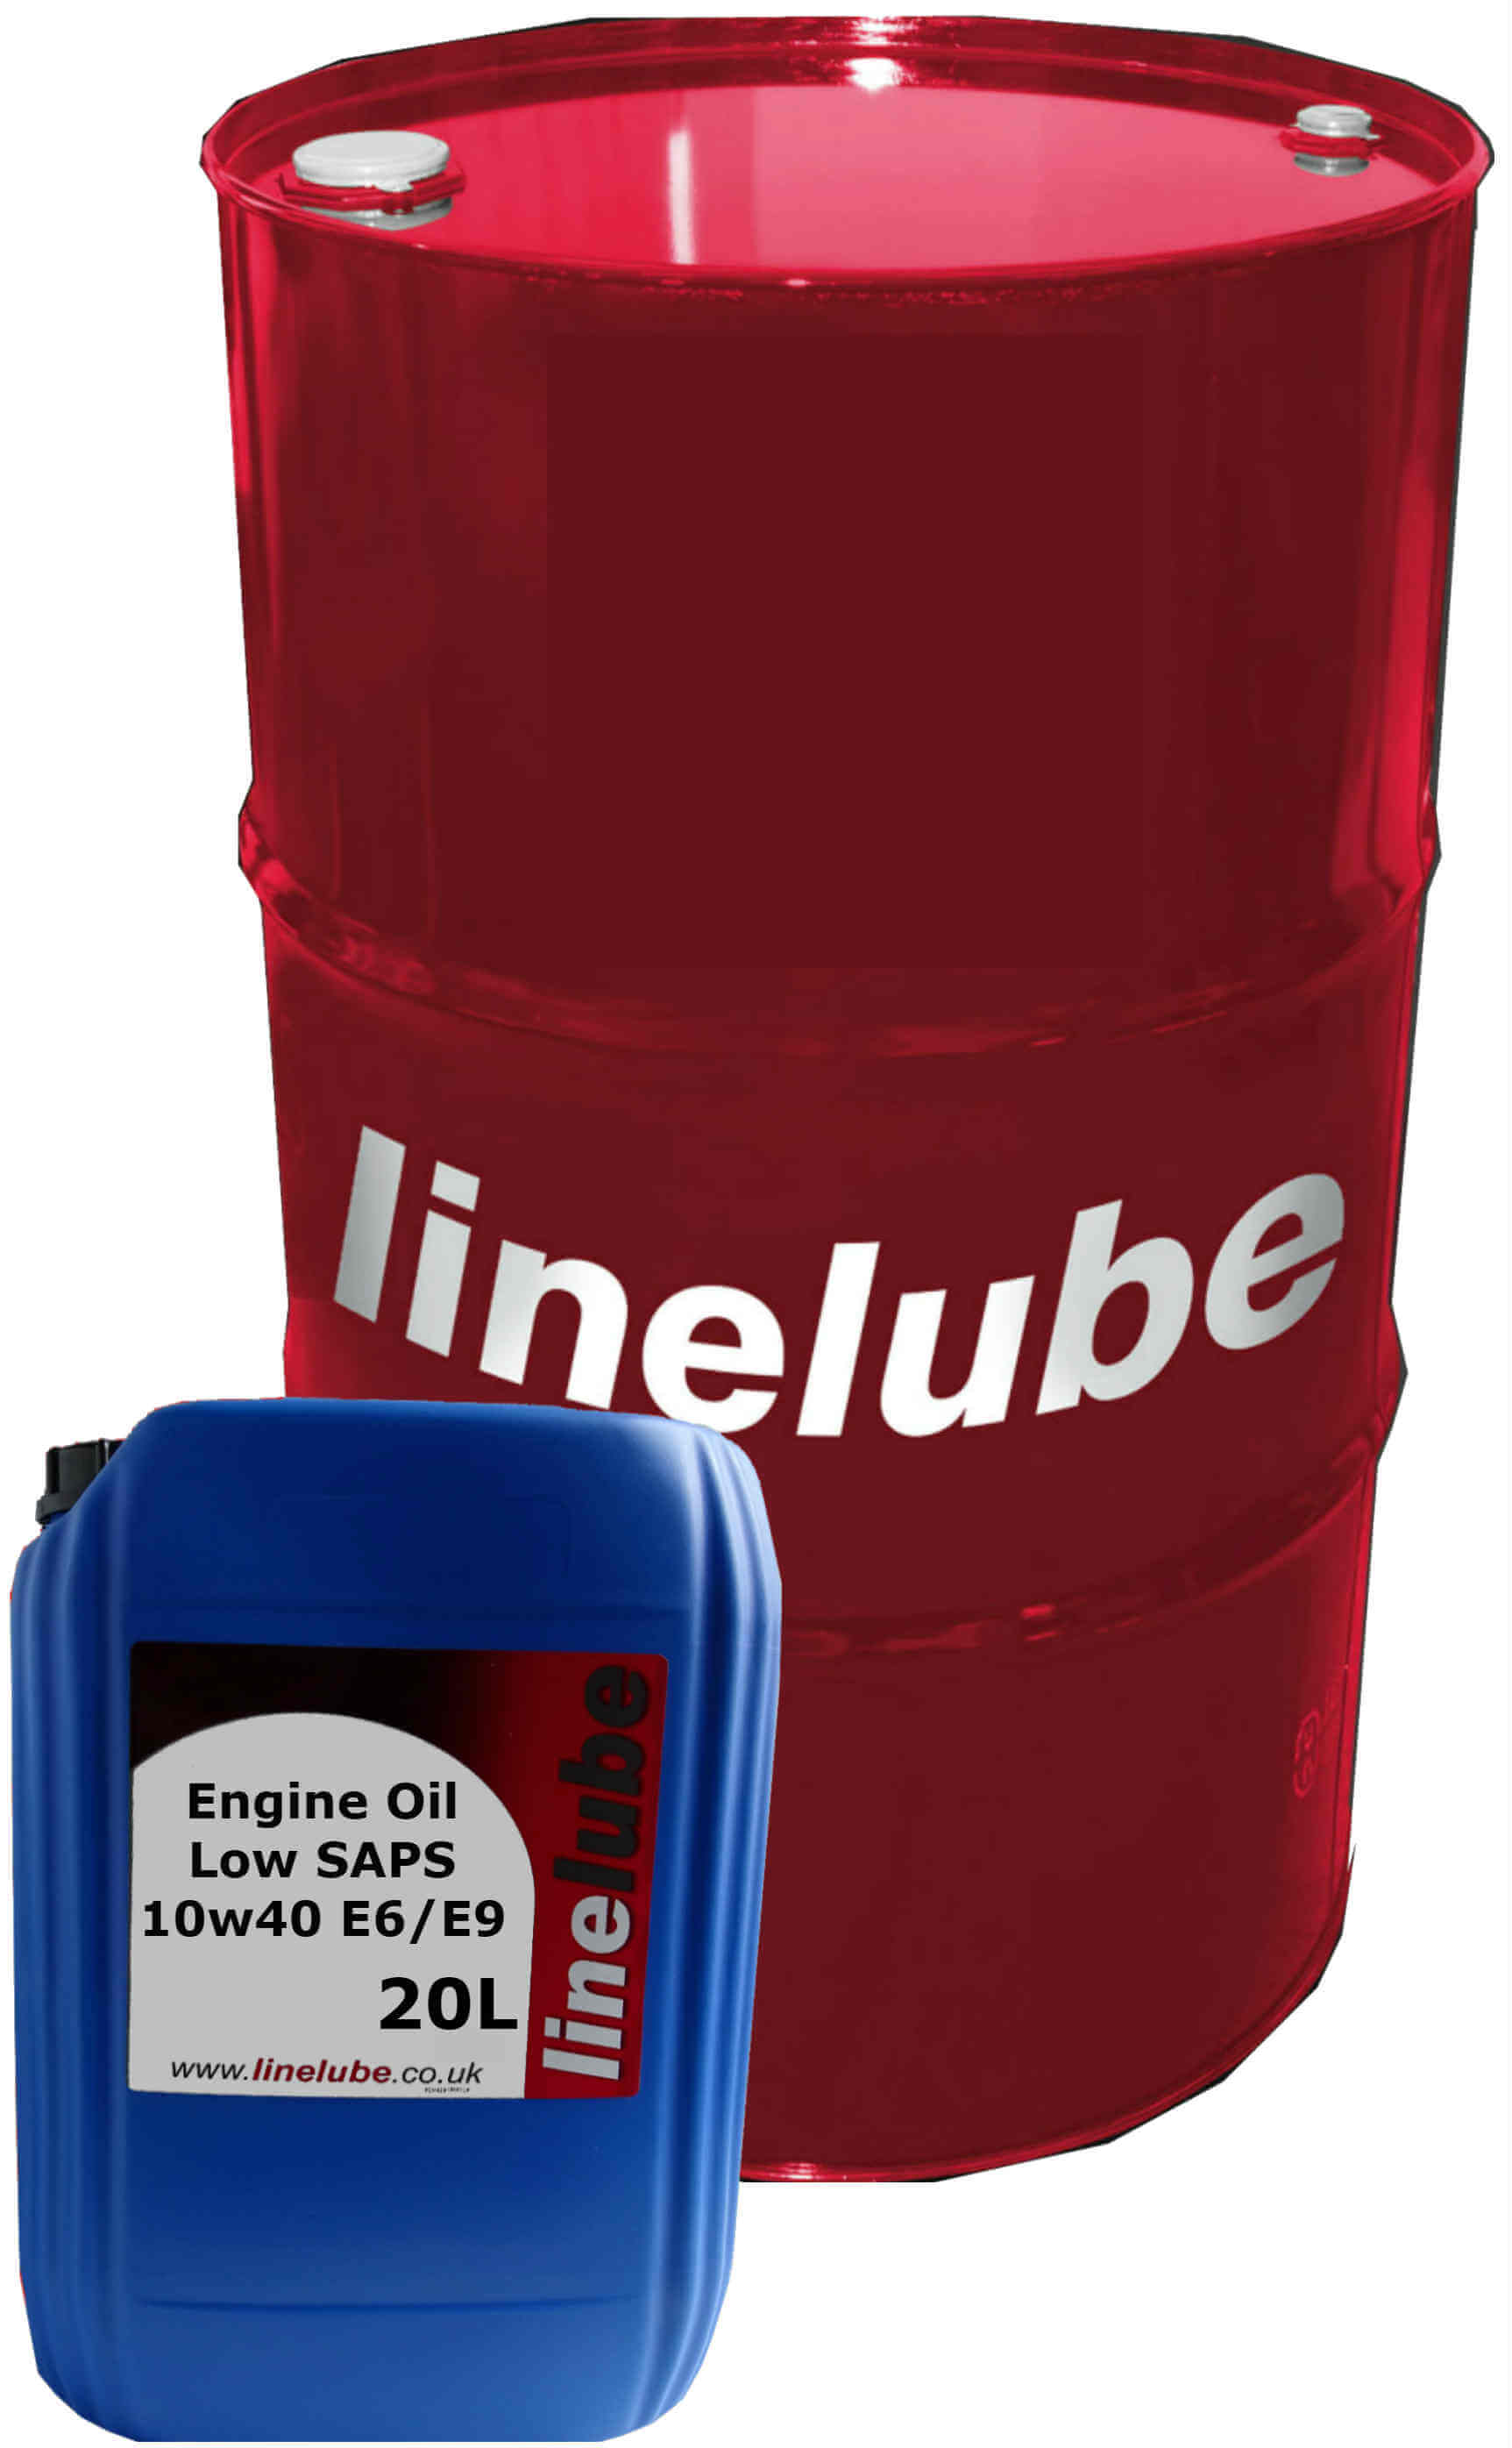 Linelube Engine Oil Low SAPS 10w40 E6/E9